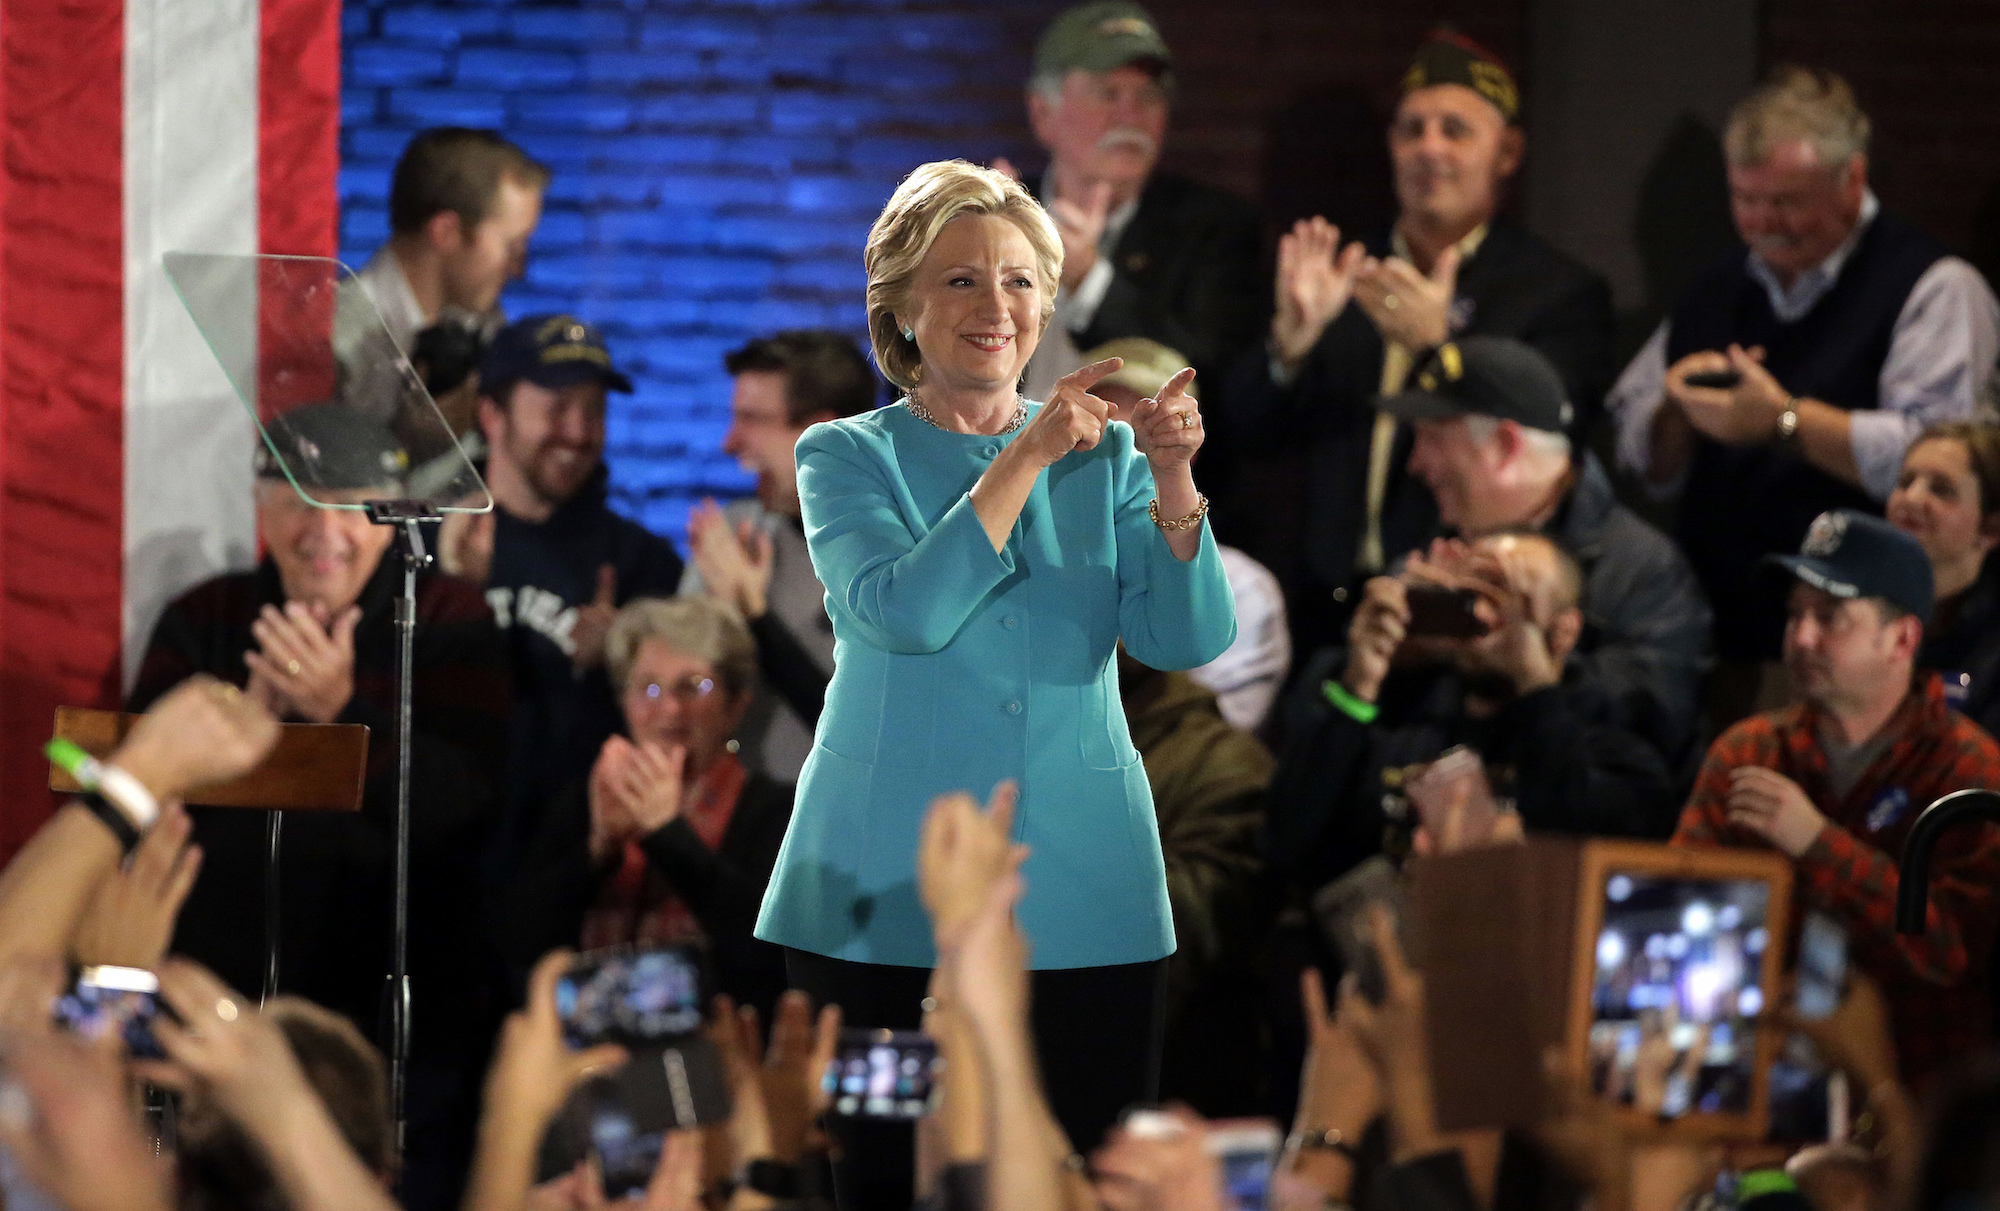 Democratic presidential candidate Hillary Clinton greets the audience during a campaign rally Sunday, Nov. 6, 2016, in Manchester, N.H. Piccolo said that voting for Clinton comes from a very personal place.(Steven Senne/AP Exchange)